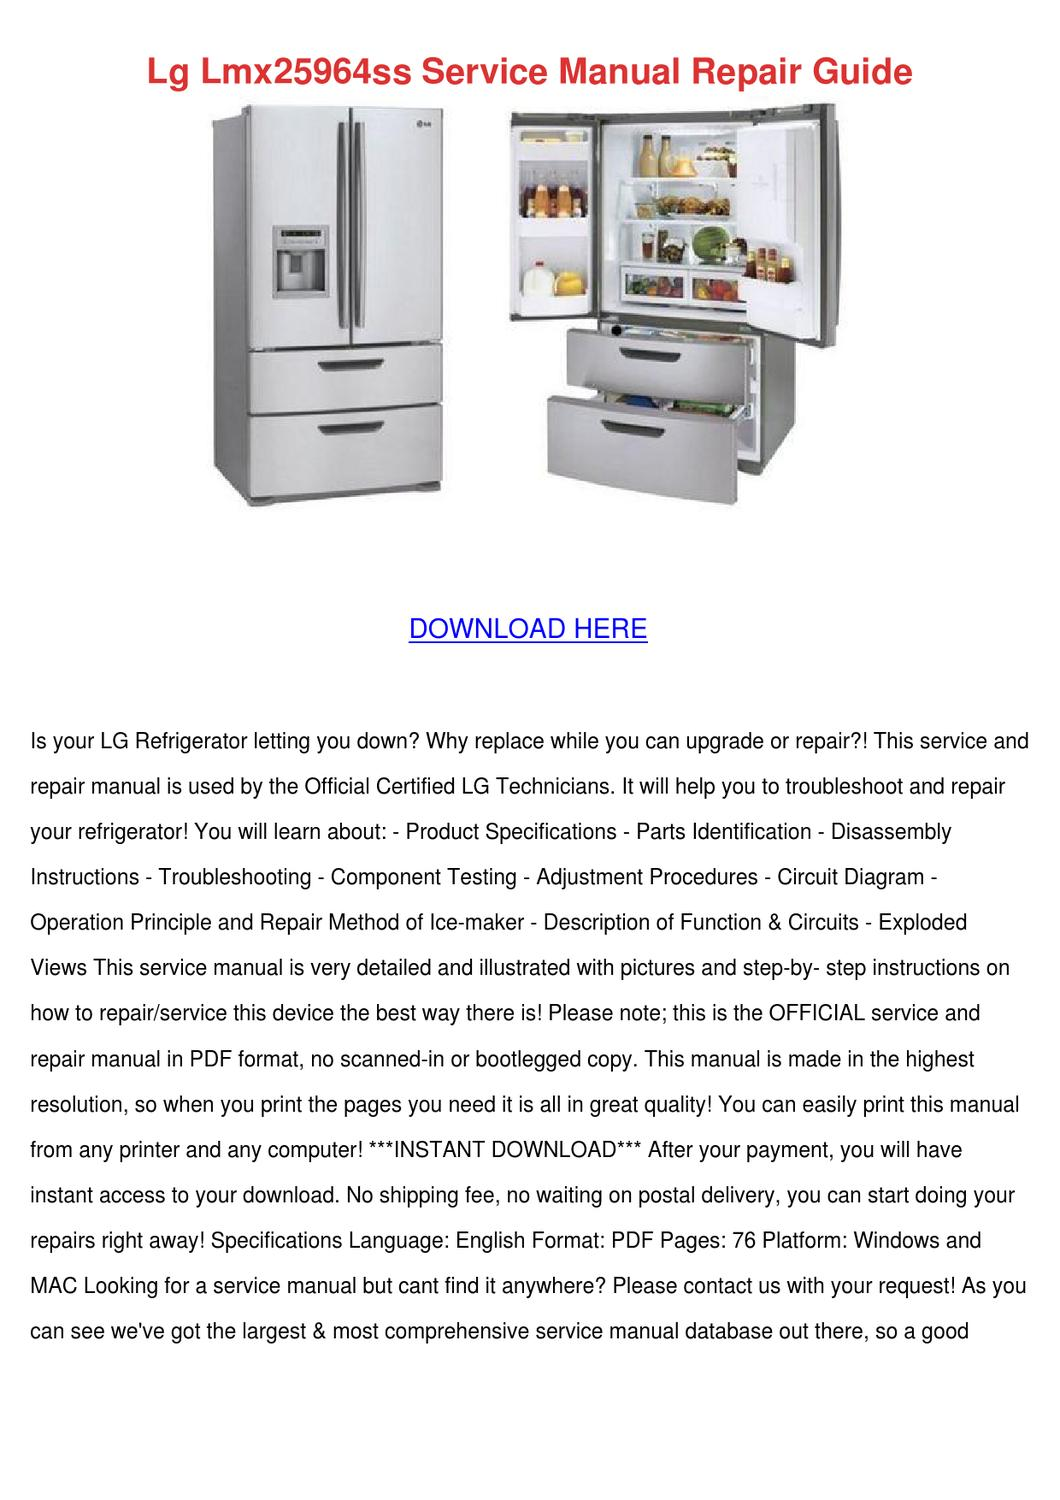 Lg Lmx25964ss Service Manual Repair Guide by LouiseLindquist - issuu